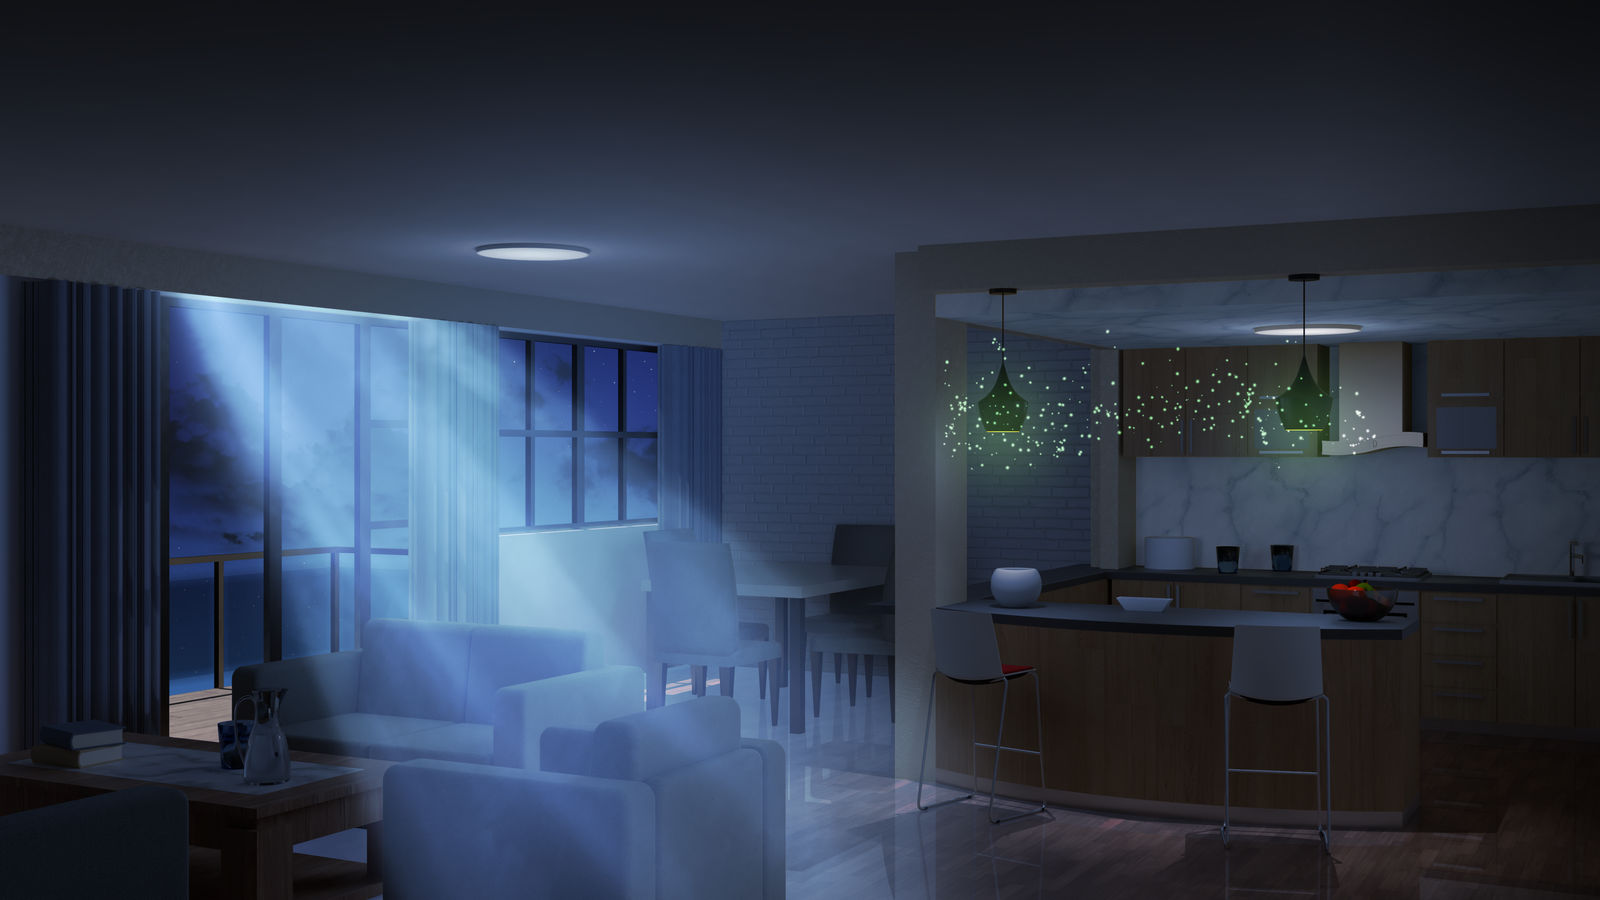 Living Room Penthouse Night Visual Novel Bg By Tamagochikun On Deviantart